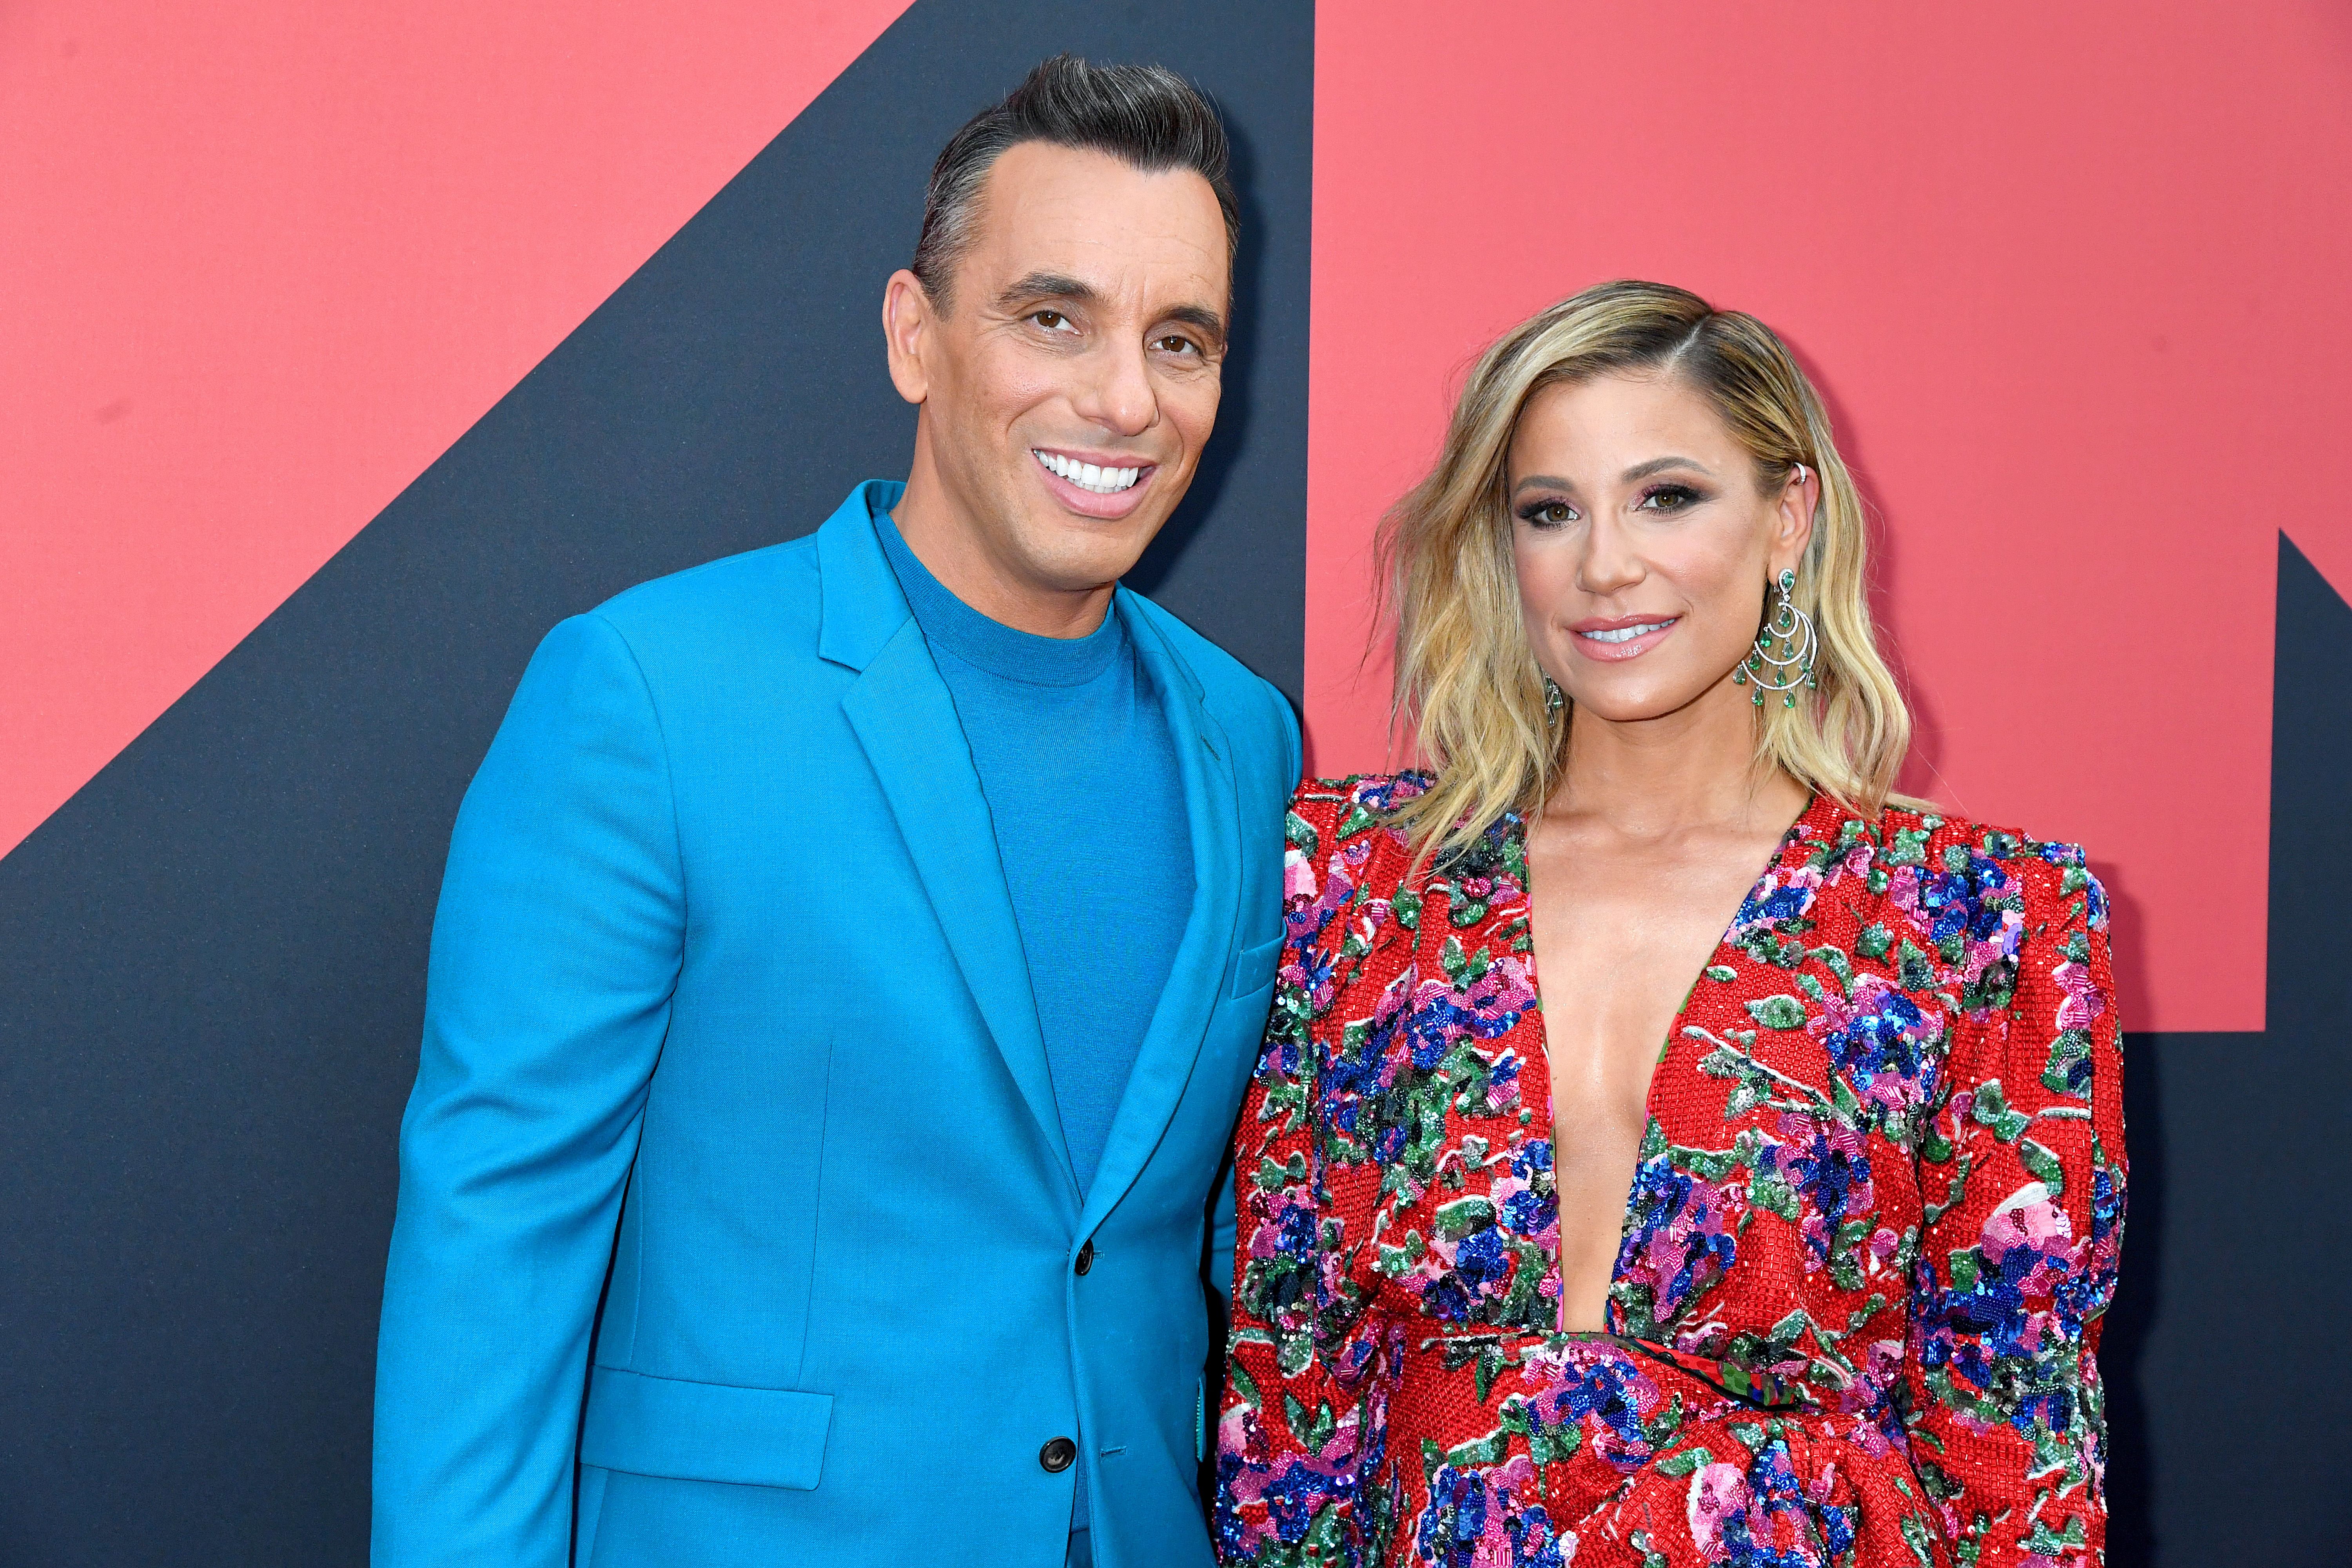 Sebastian Maniscalco and Lana Gomez at the 2019 MTV Video Music Awards in 2019 in Newark, New Jersey | Source: Getty Images